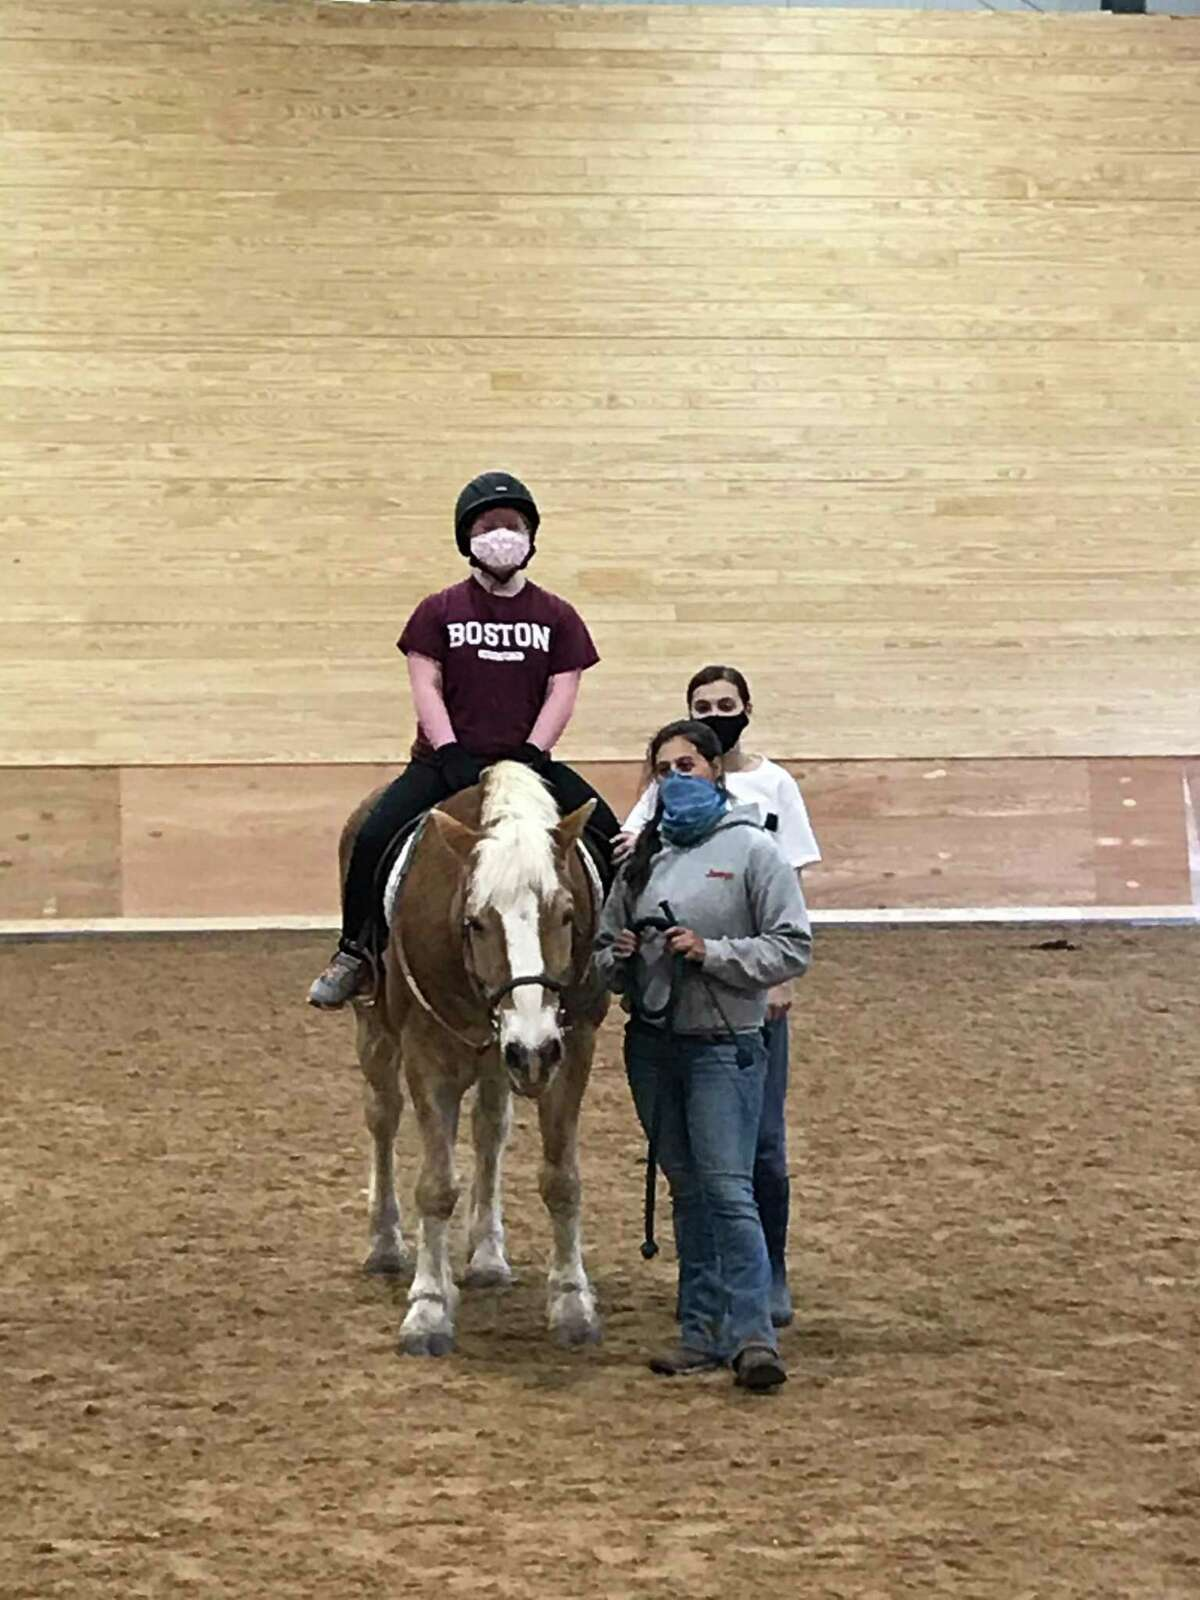 Alicia Crossley, on the horse, with Samantha Sola and Gianna Campbell